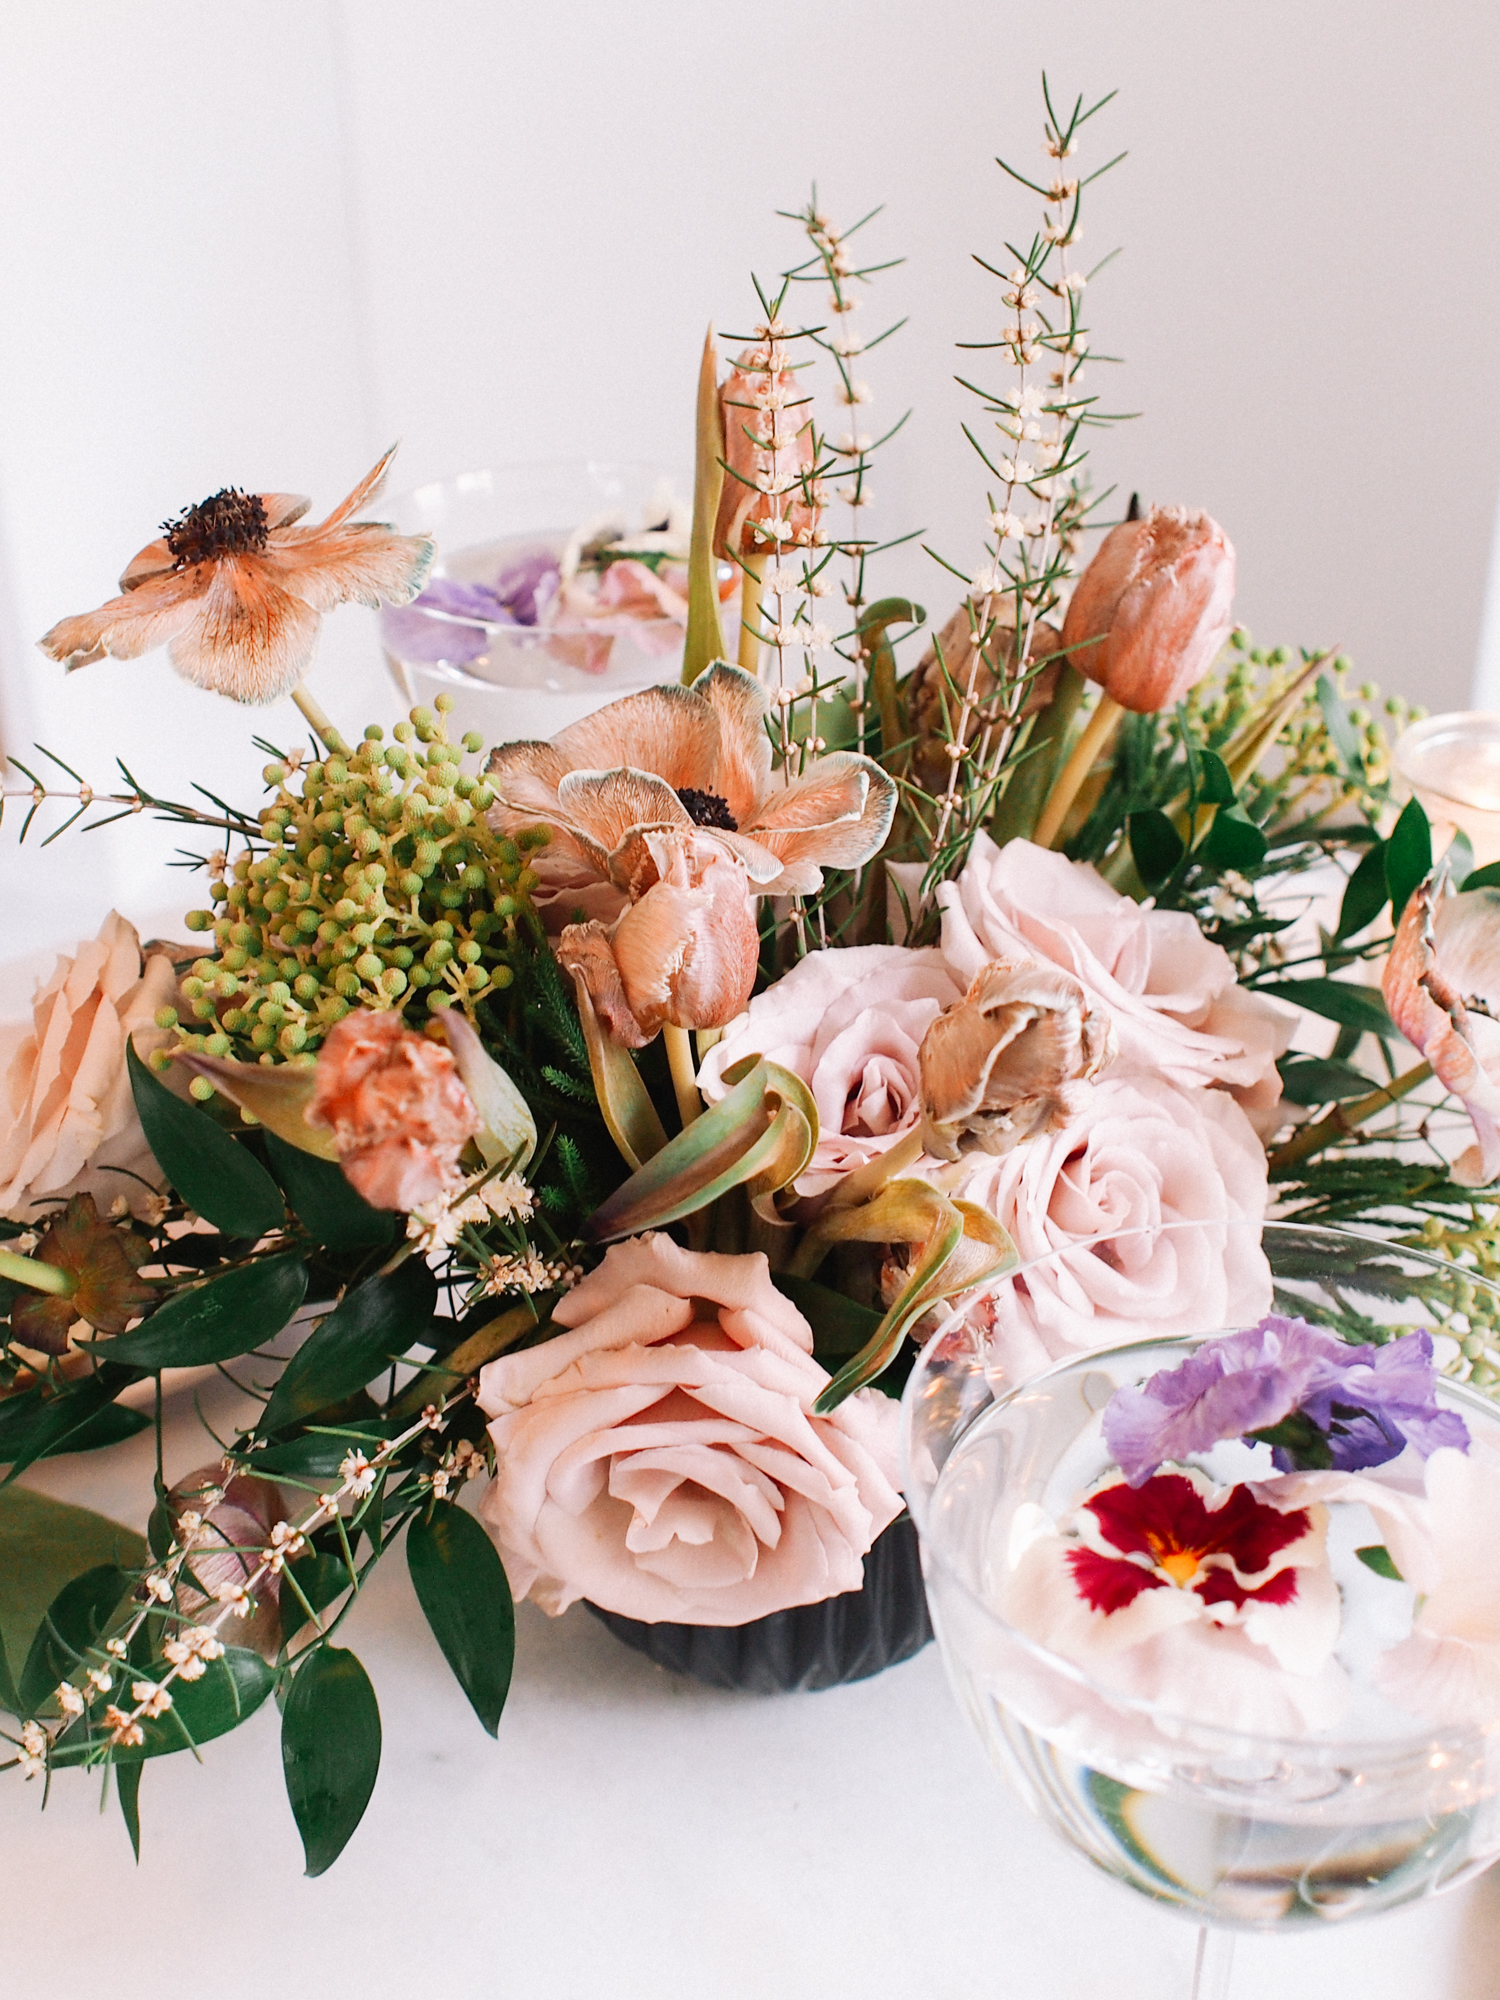 Springtime flowers for a perfect tabletop | A Fabulous Fete